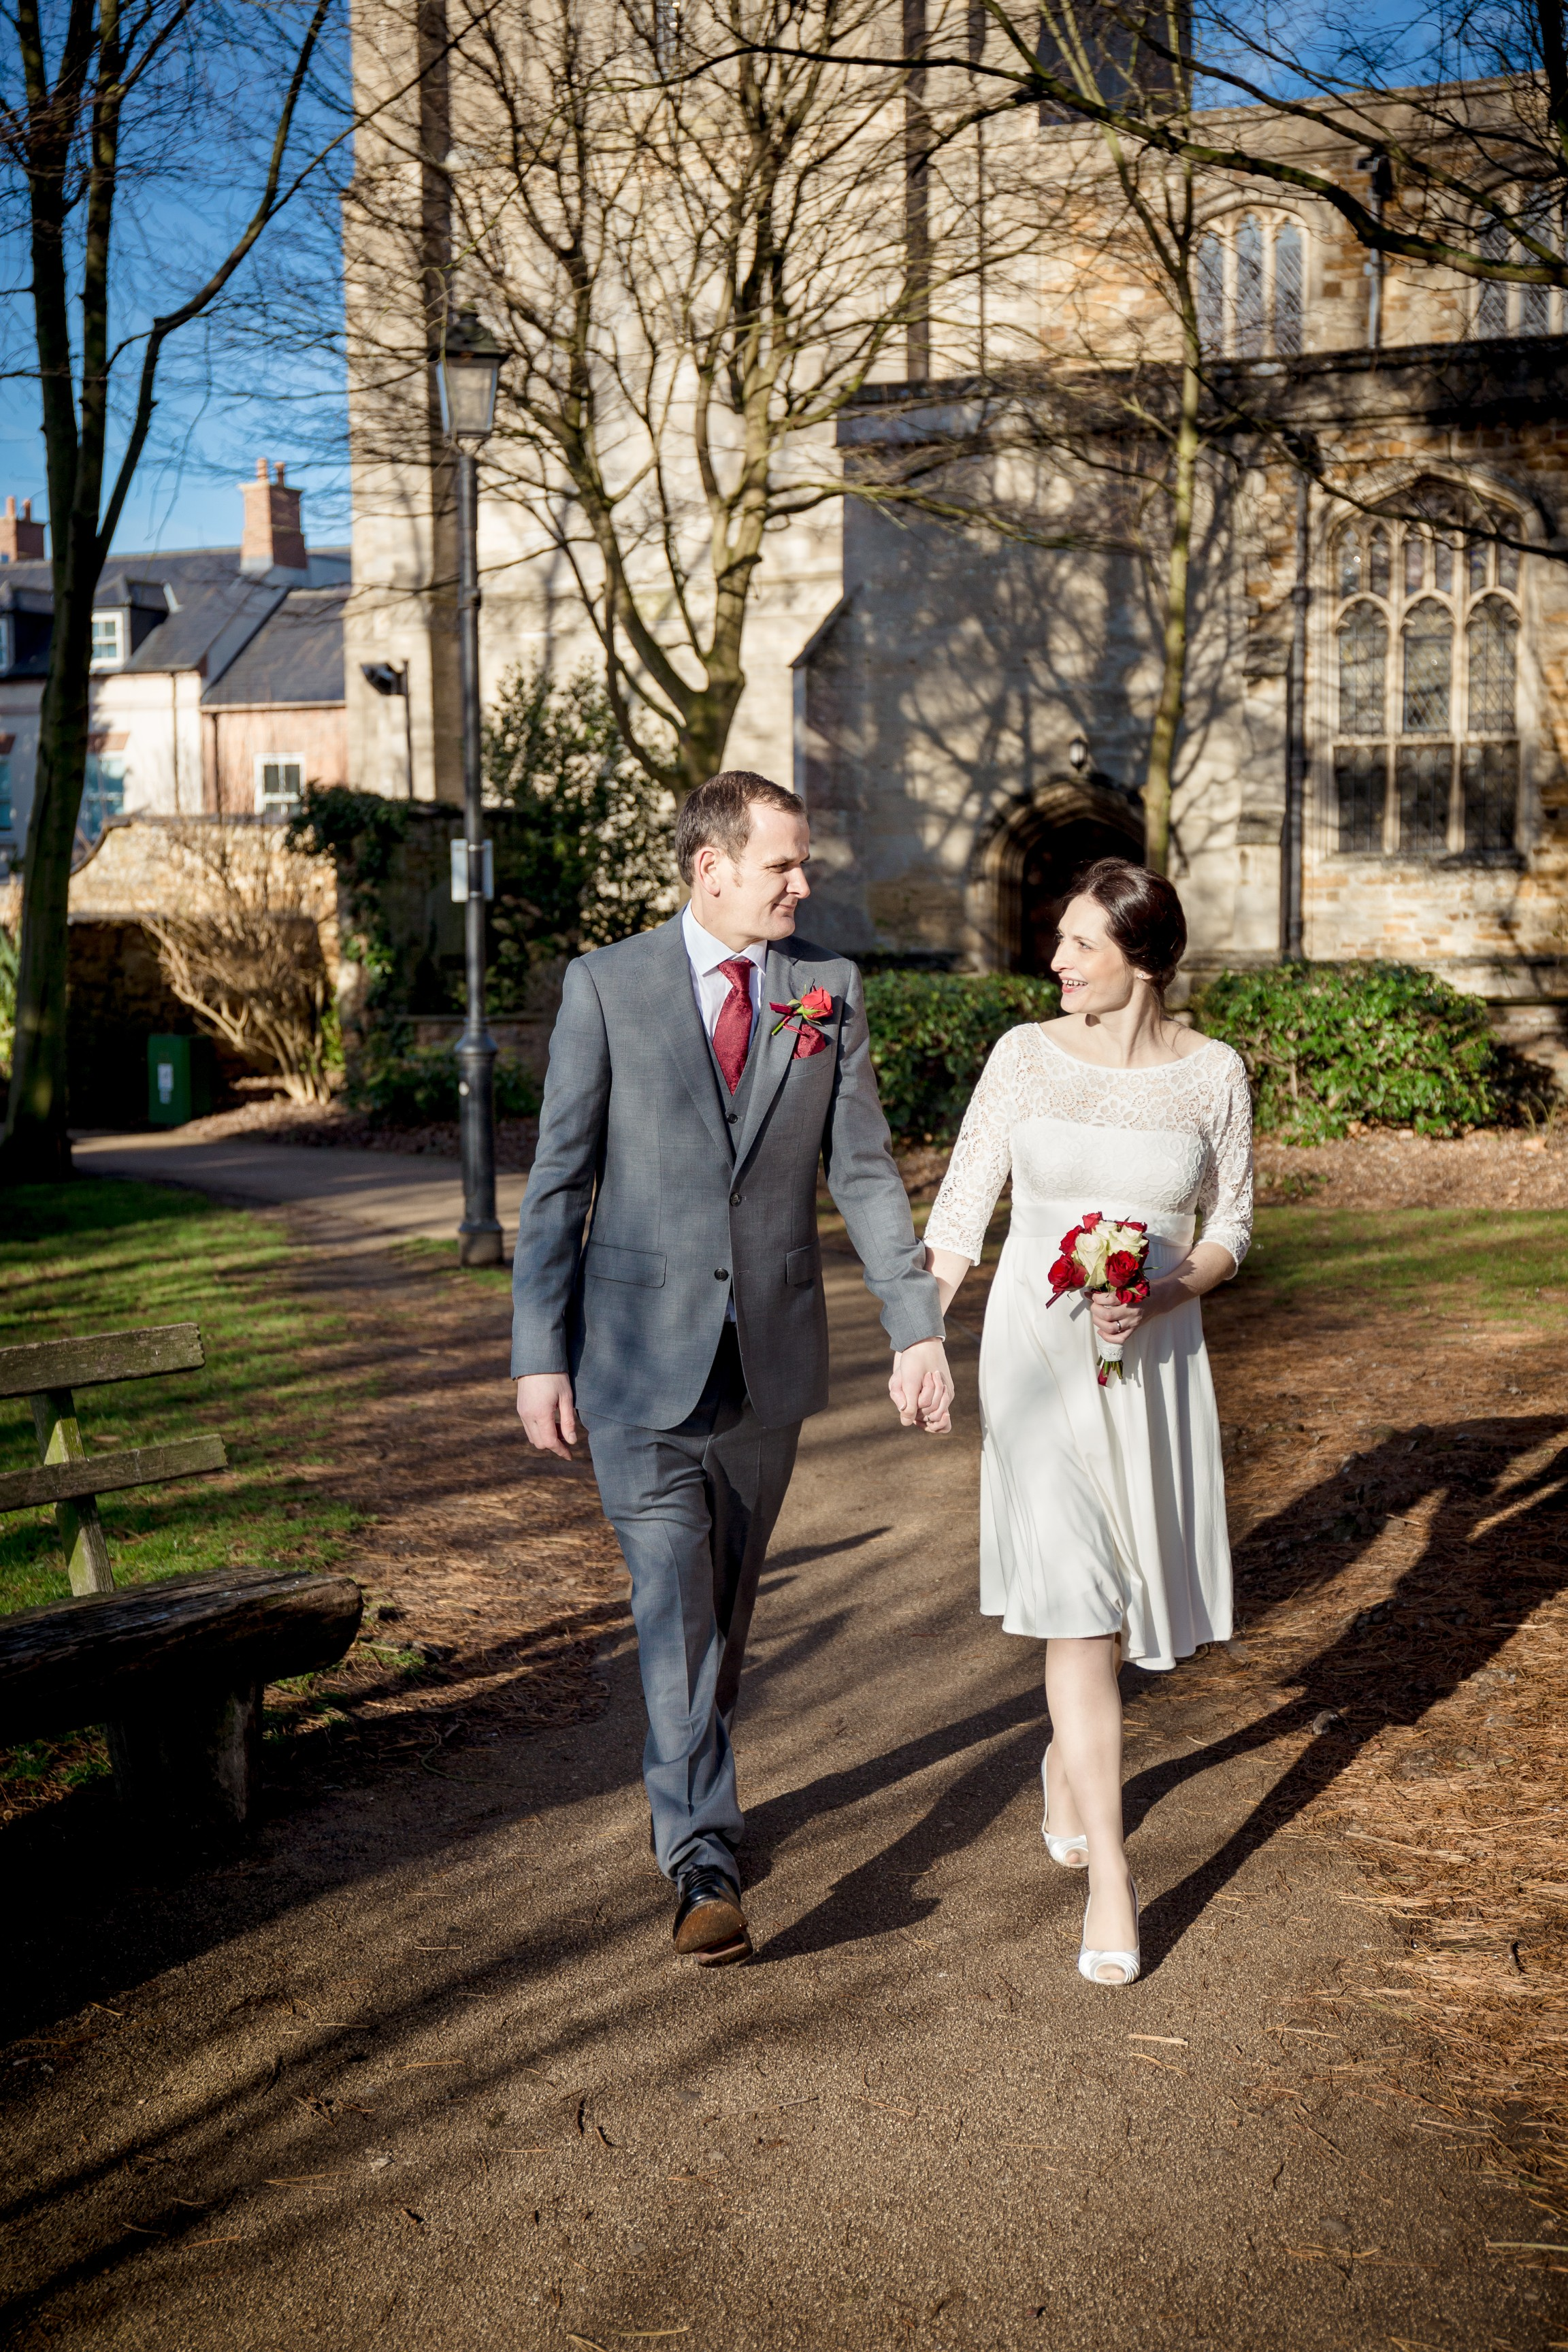 st peter and paul church, Mr&Mrs, just married, newlyweds, bride and groom, kettering, fotovida wedding photography